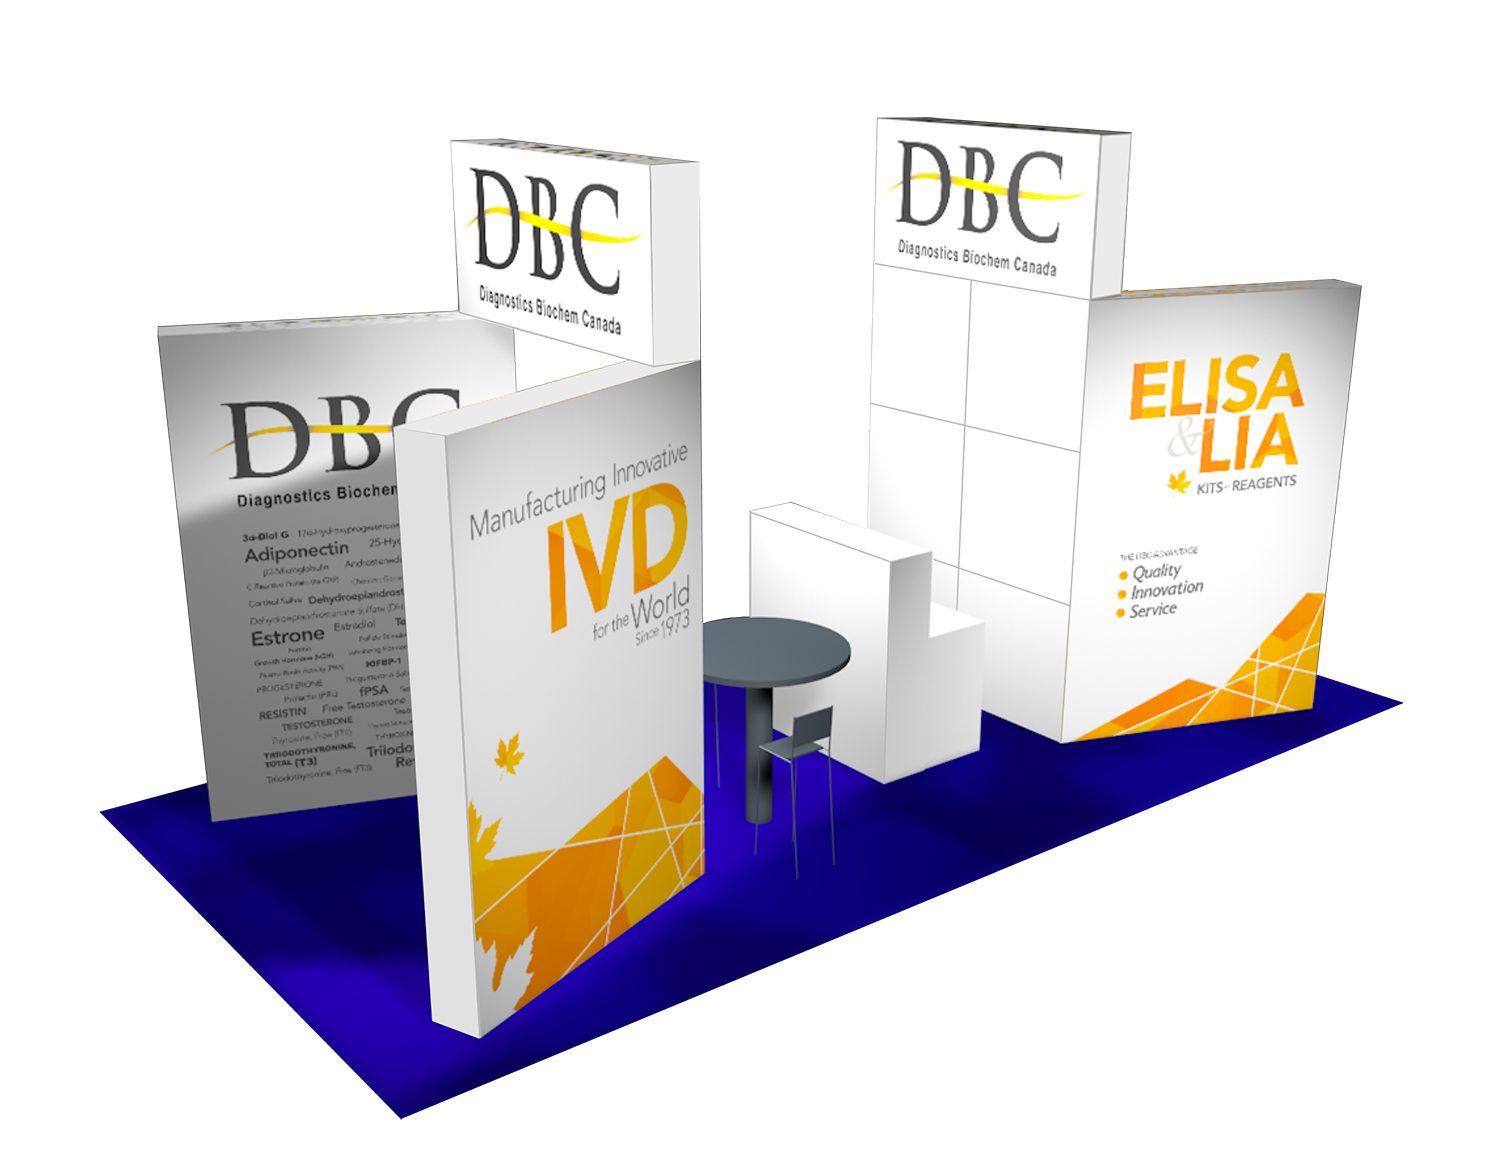 DBC booth #70 at Euromedlab 2019